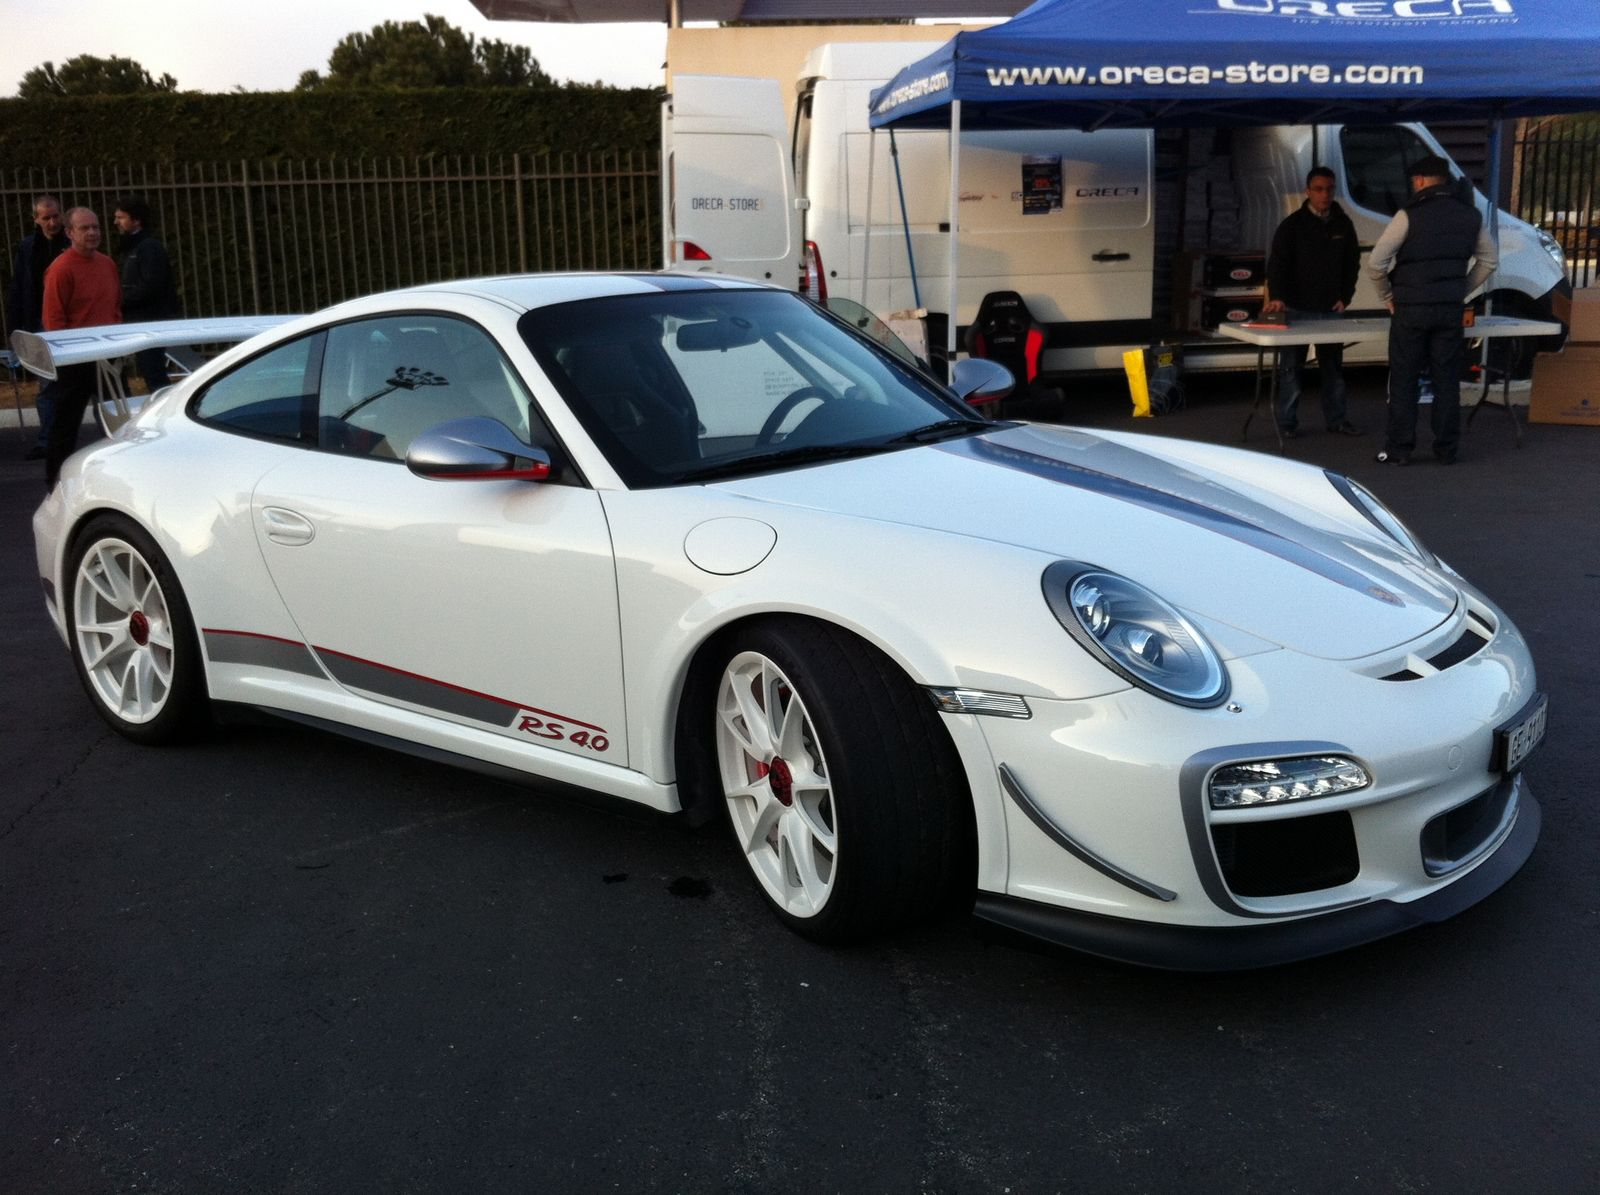 used porsche 911 gt3 rs 4 0 priced at 380k gtspirit. Black Bedroom Furniture Sets. Home Design Ideas